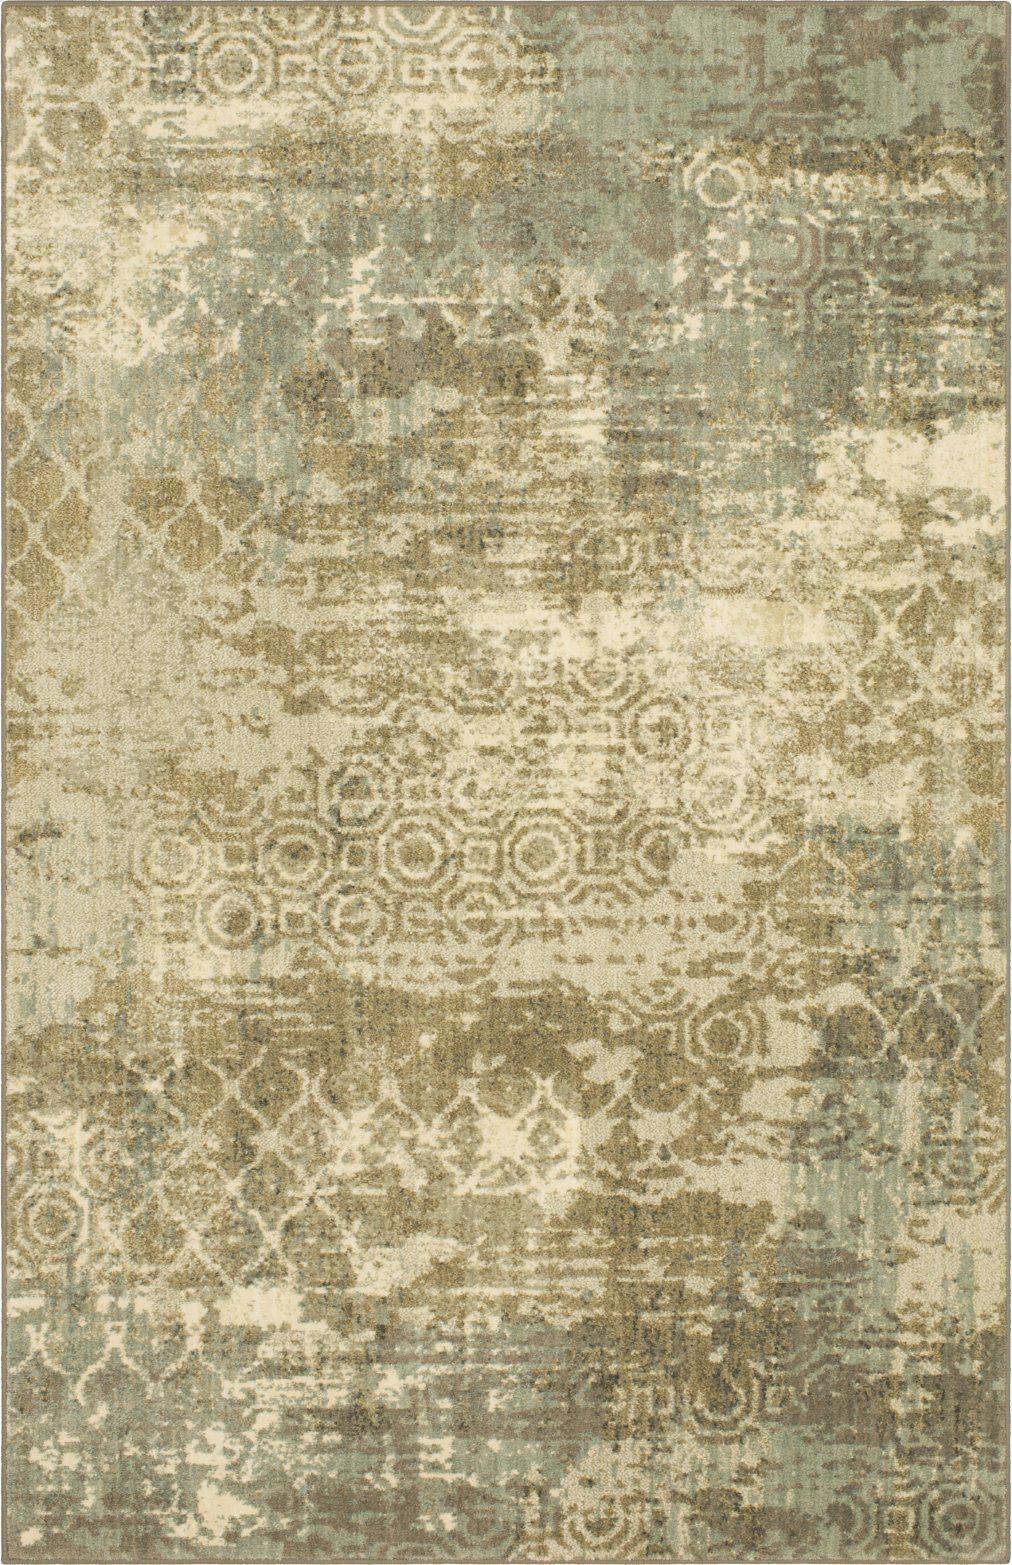 Artisan Frotage Willow Grey by Scott Living Area Rug-Area Rug-Scott Living-The Rug Truck